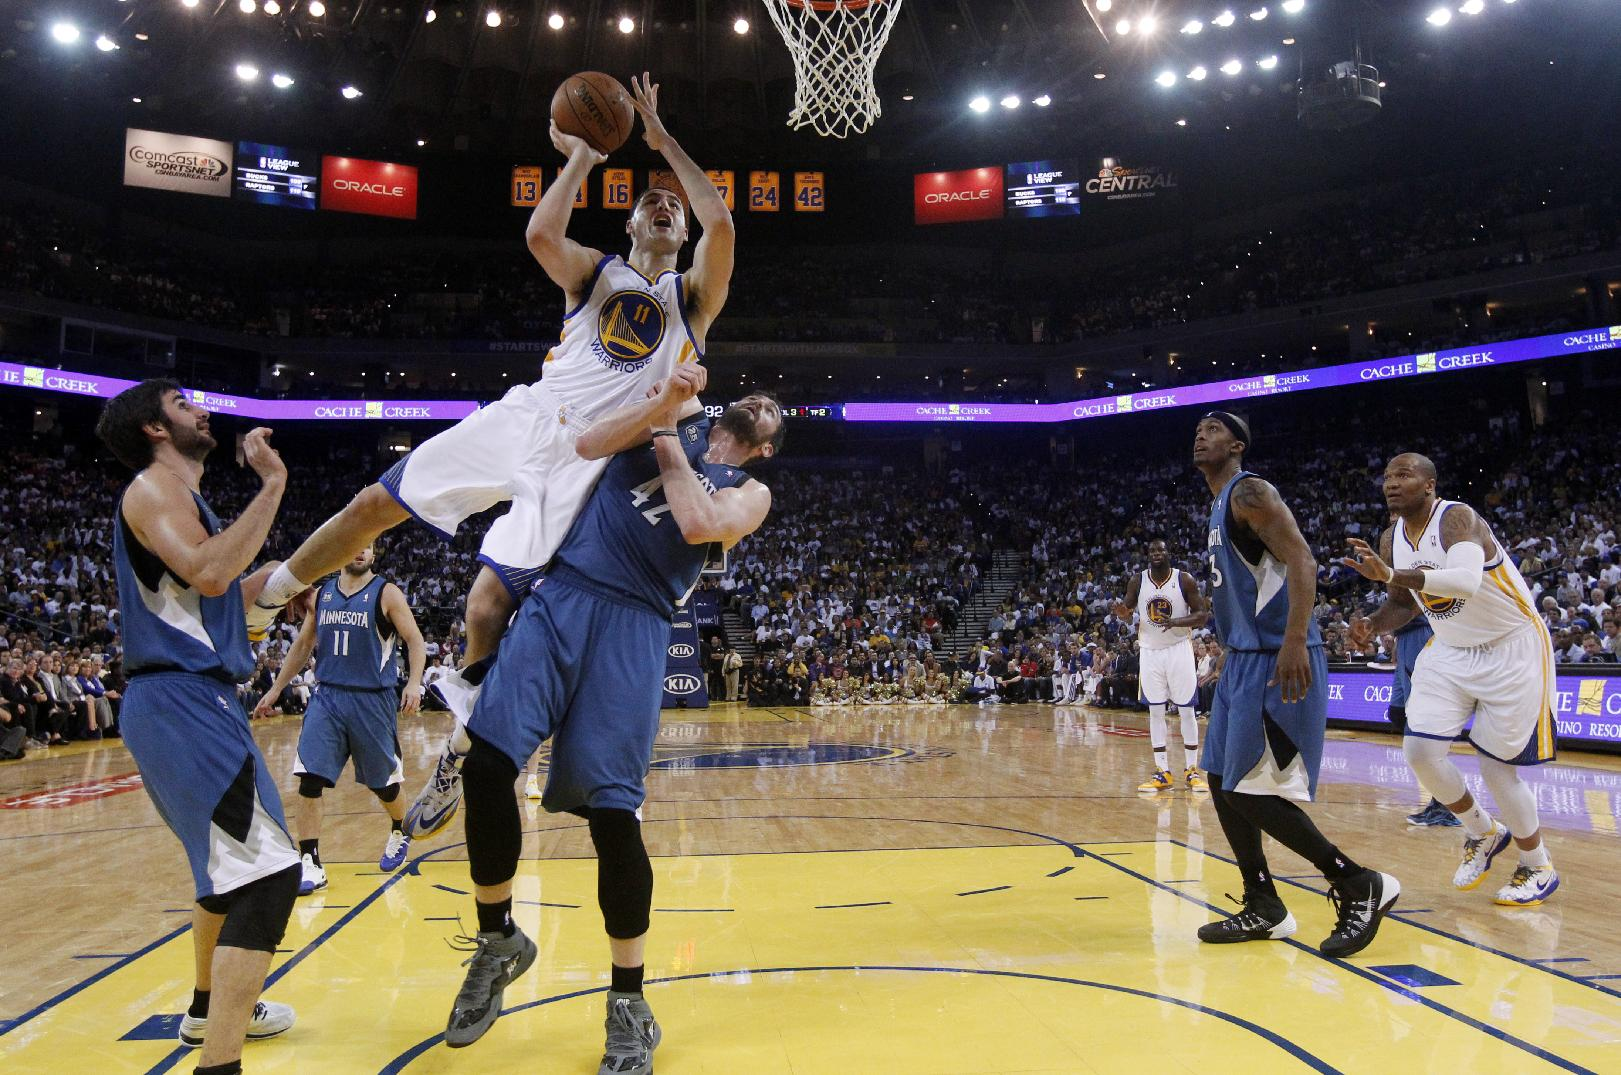 Golden State Warriors' Klay Thompson (11) scores over Minnesota Timberwolves' Kevin Love (42) and Ricky Rubio, left, during the second half of an NBA basketball game on Monday, April 14, 2014, in Oakland, Calif. Golden State won 130-120